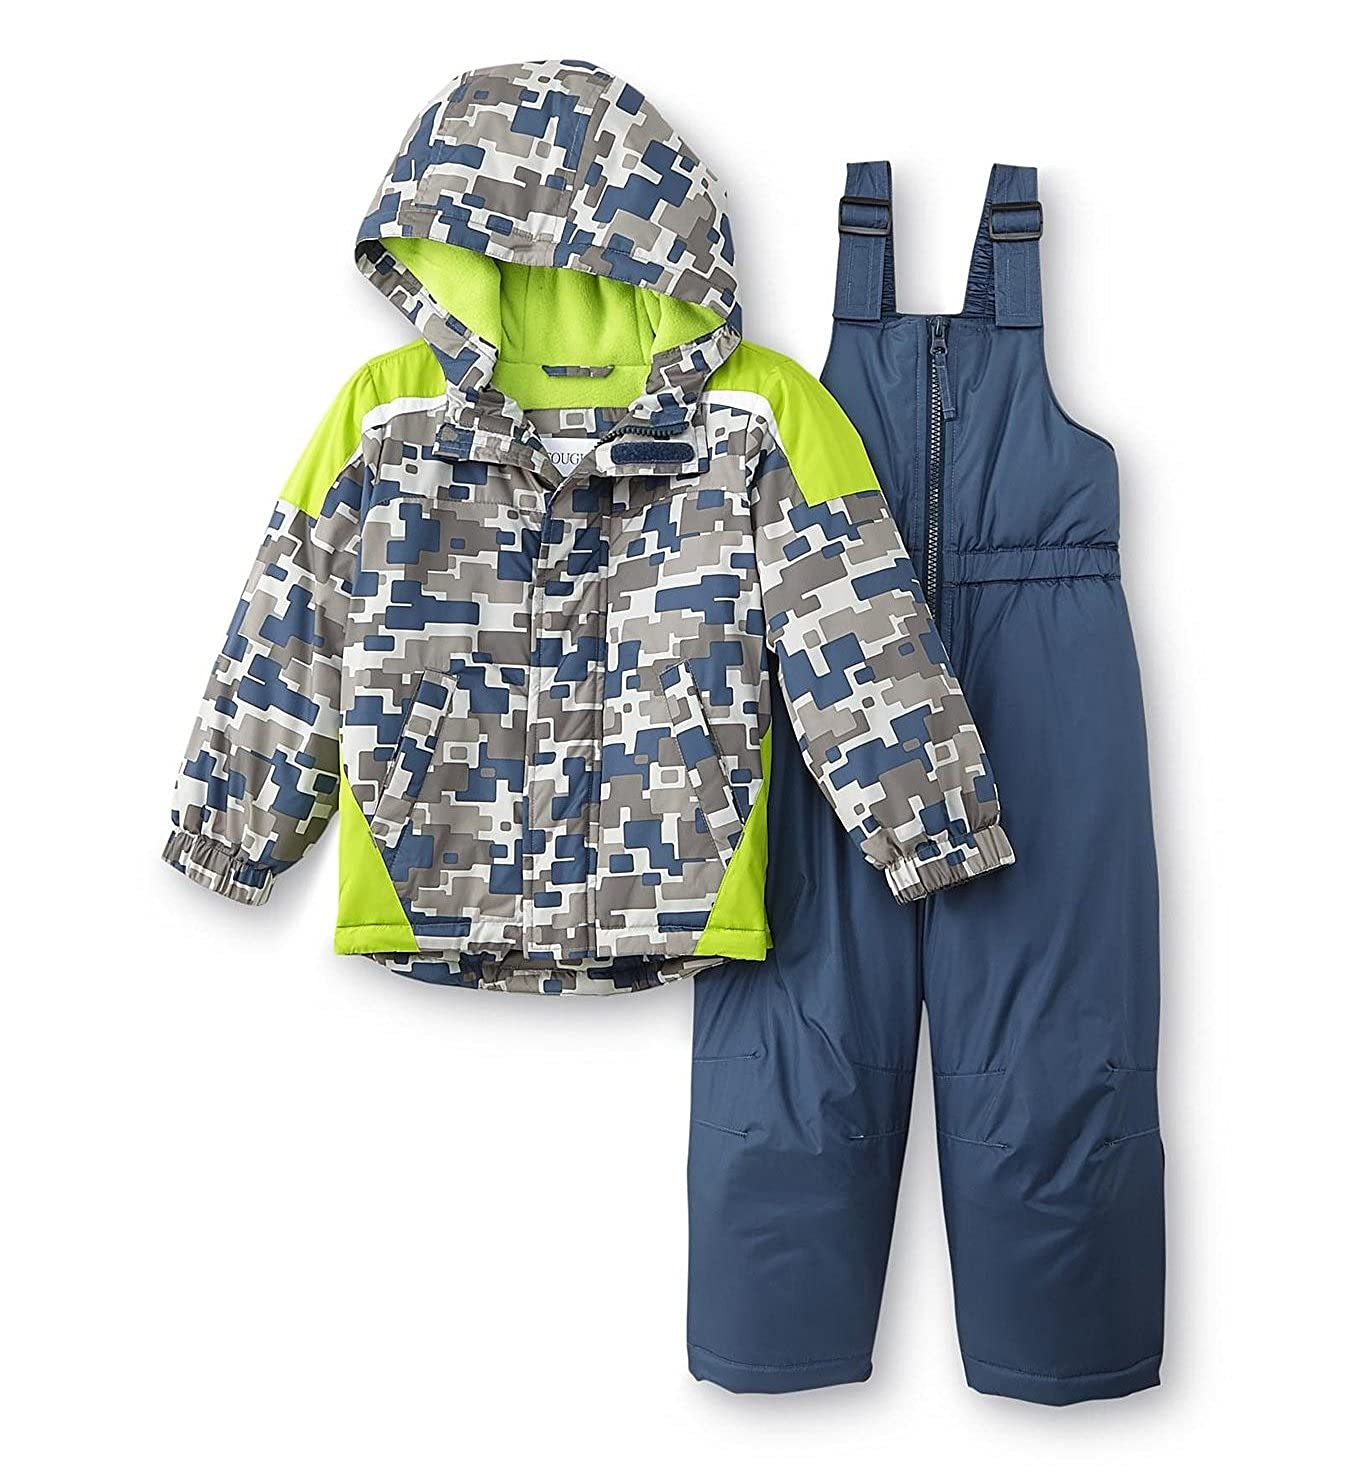 414f1337c Amazon.com  Toughskins Toddler Boys Geometric Snowsuit - Jacket Coat ...